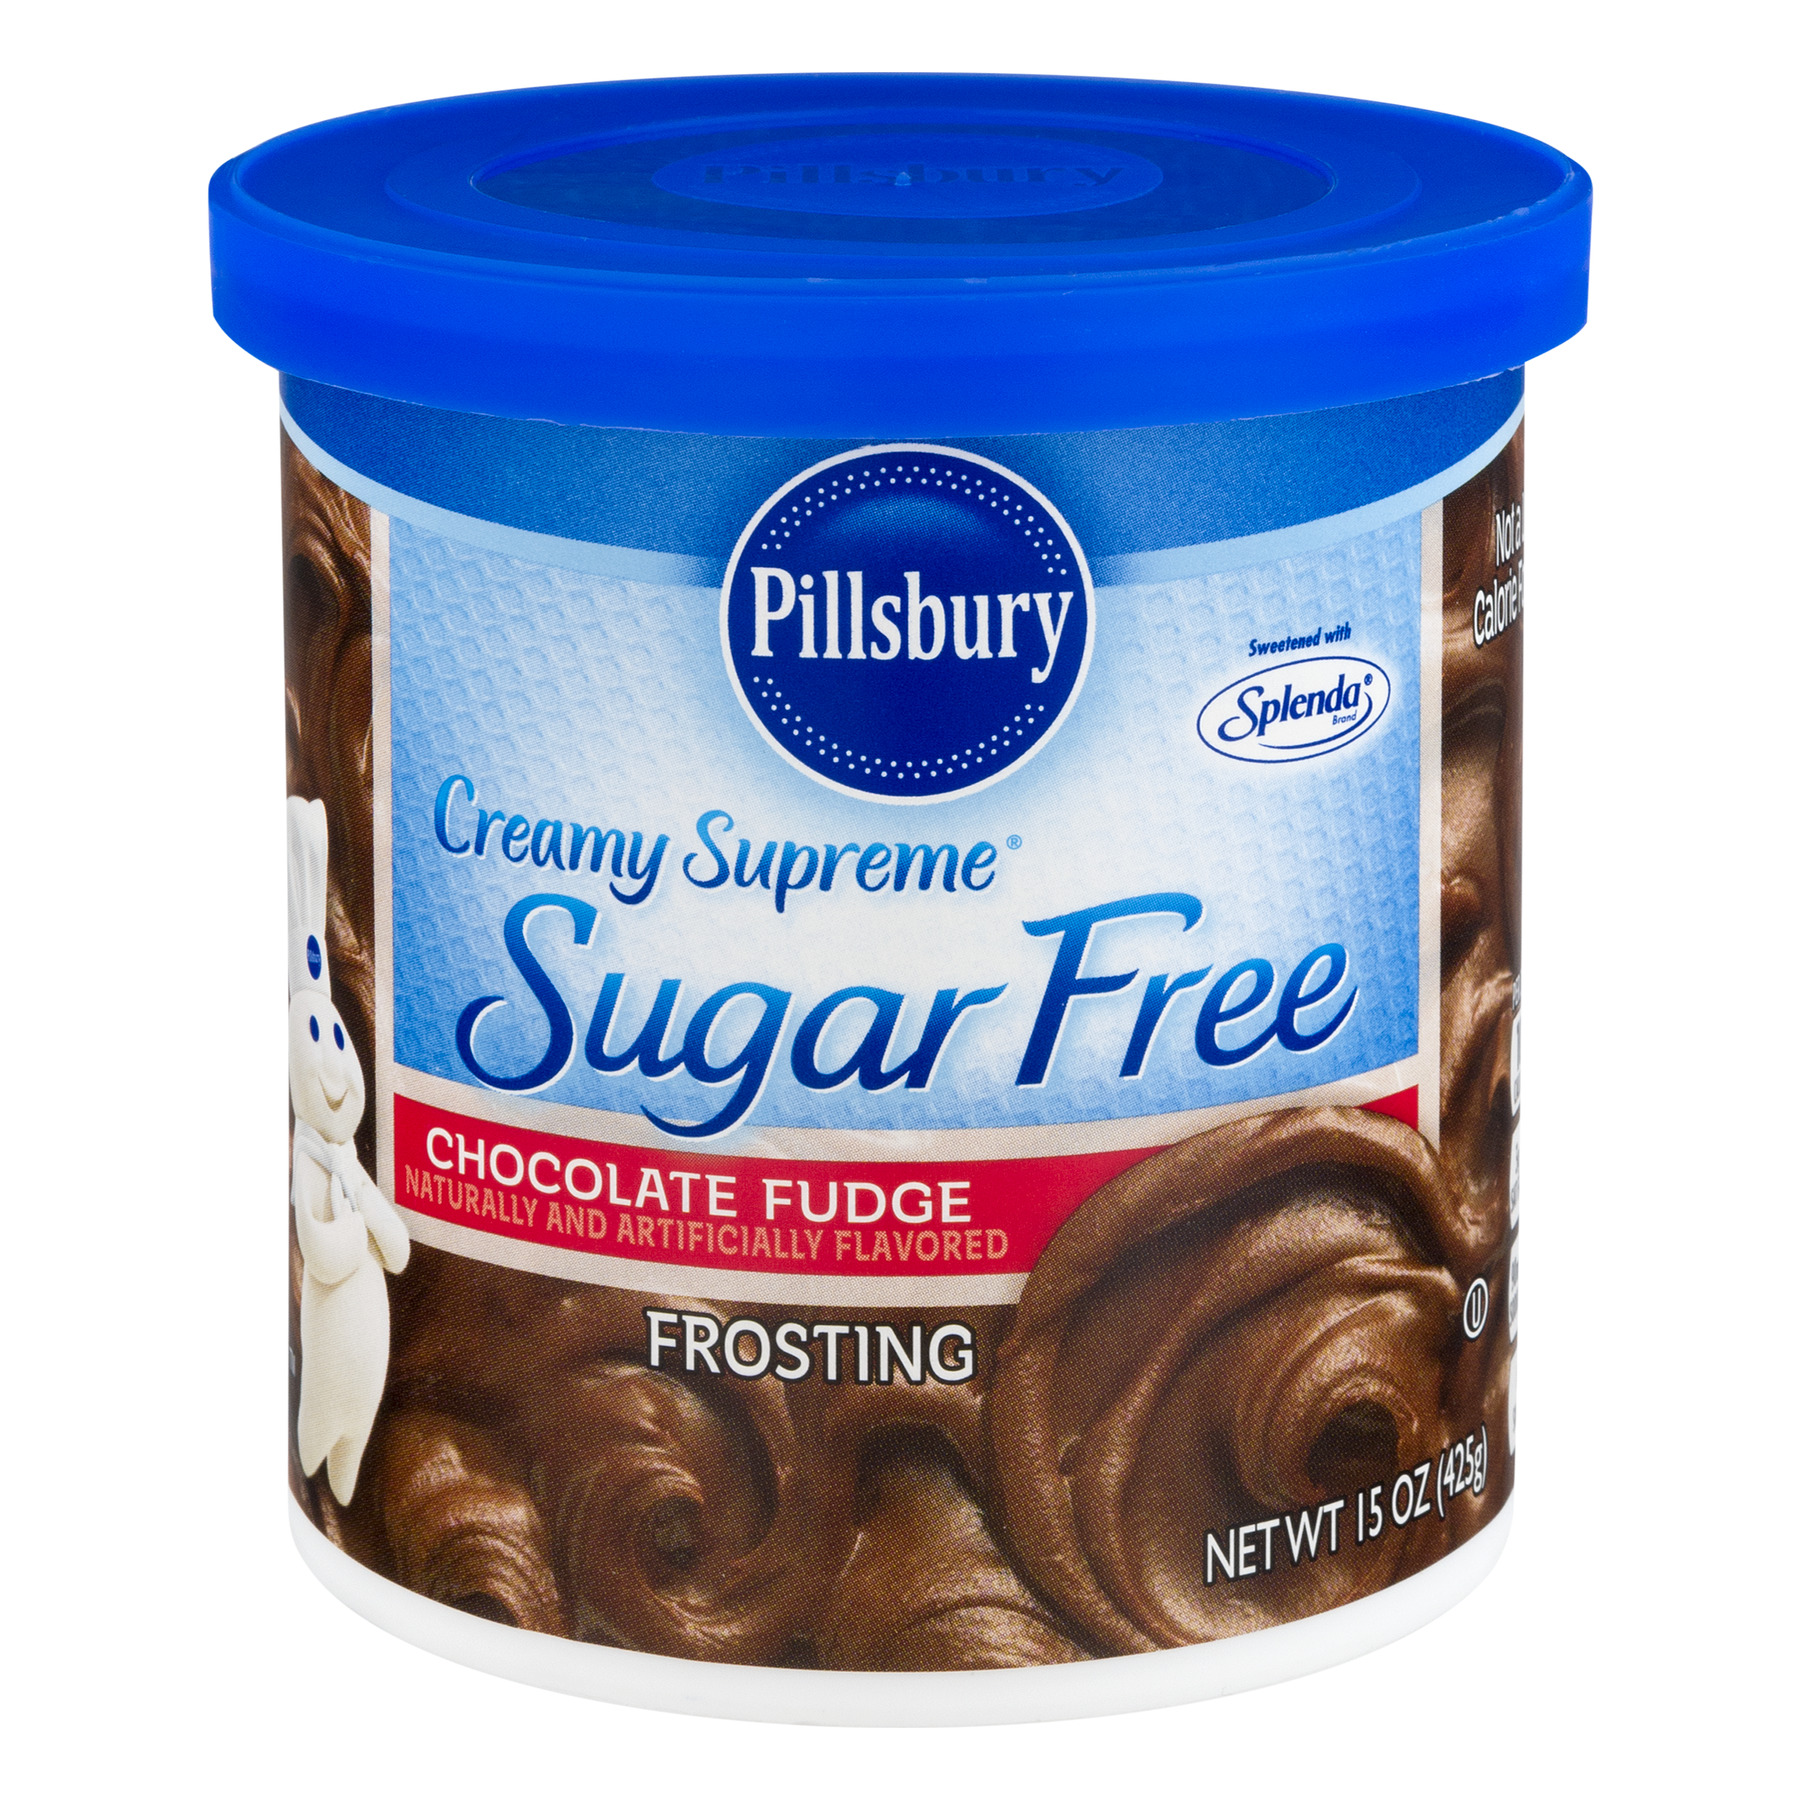 Pillsbury Creamy Supreme Sugar Free Chocolate Fudge Frosting, 15 oz